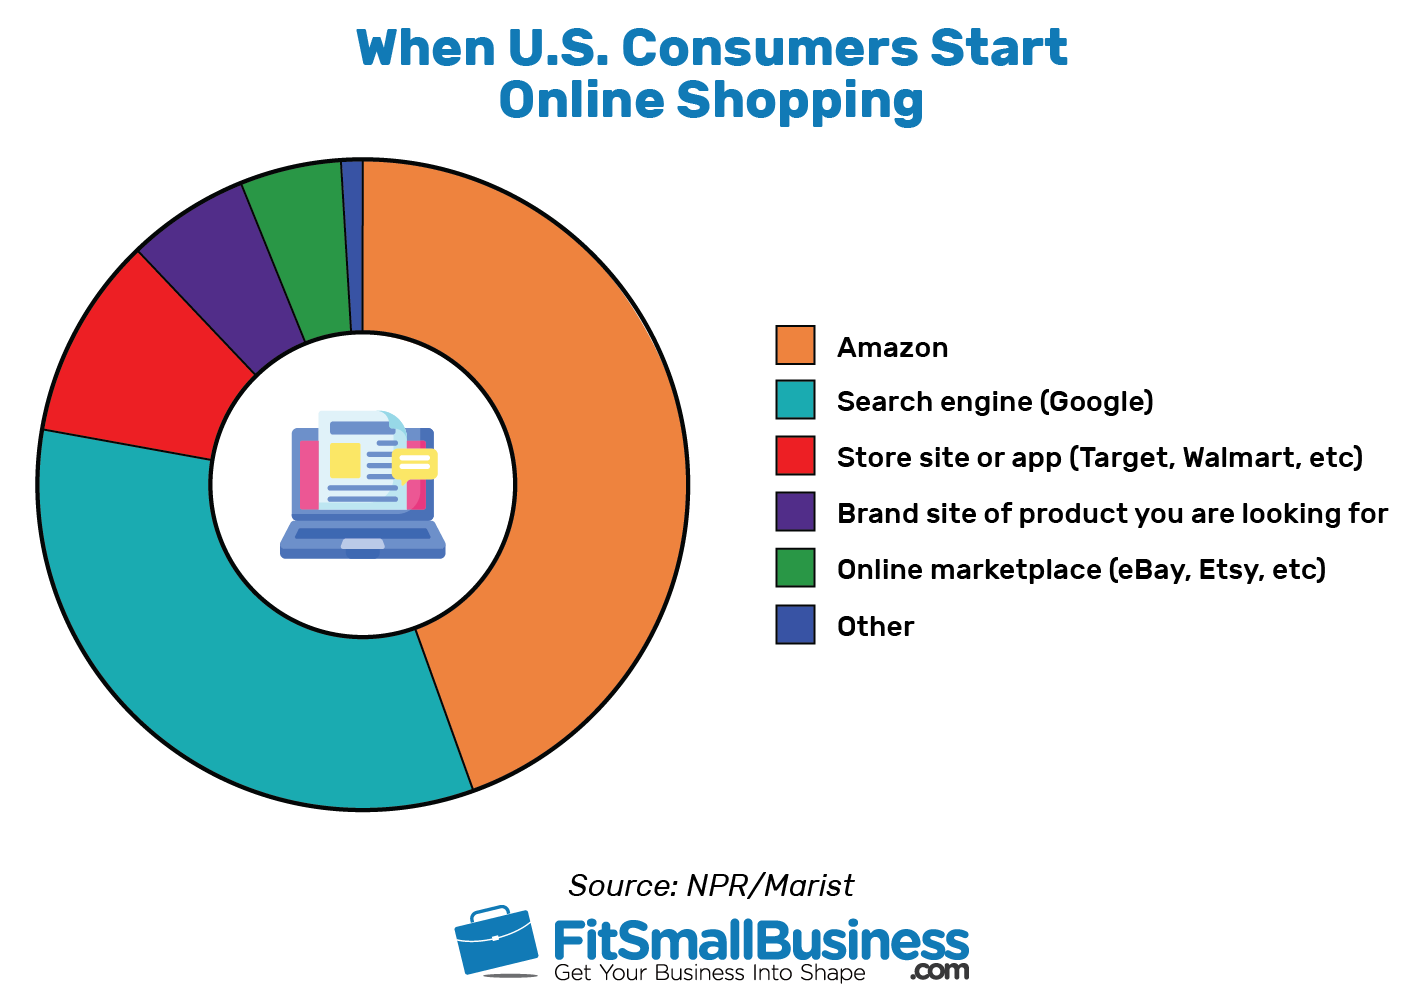 Consumers Start Online Shopping - online shopping statistics